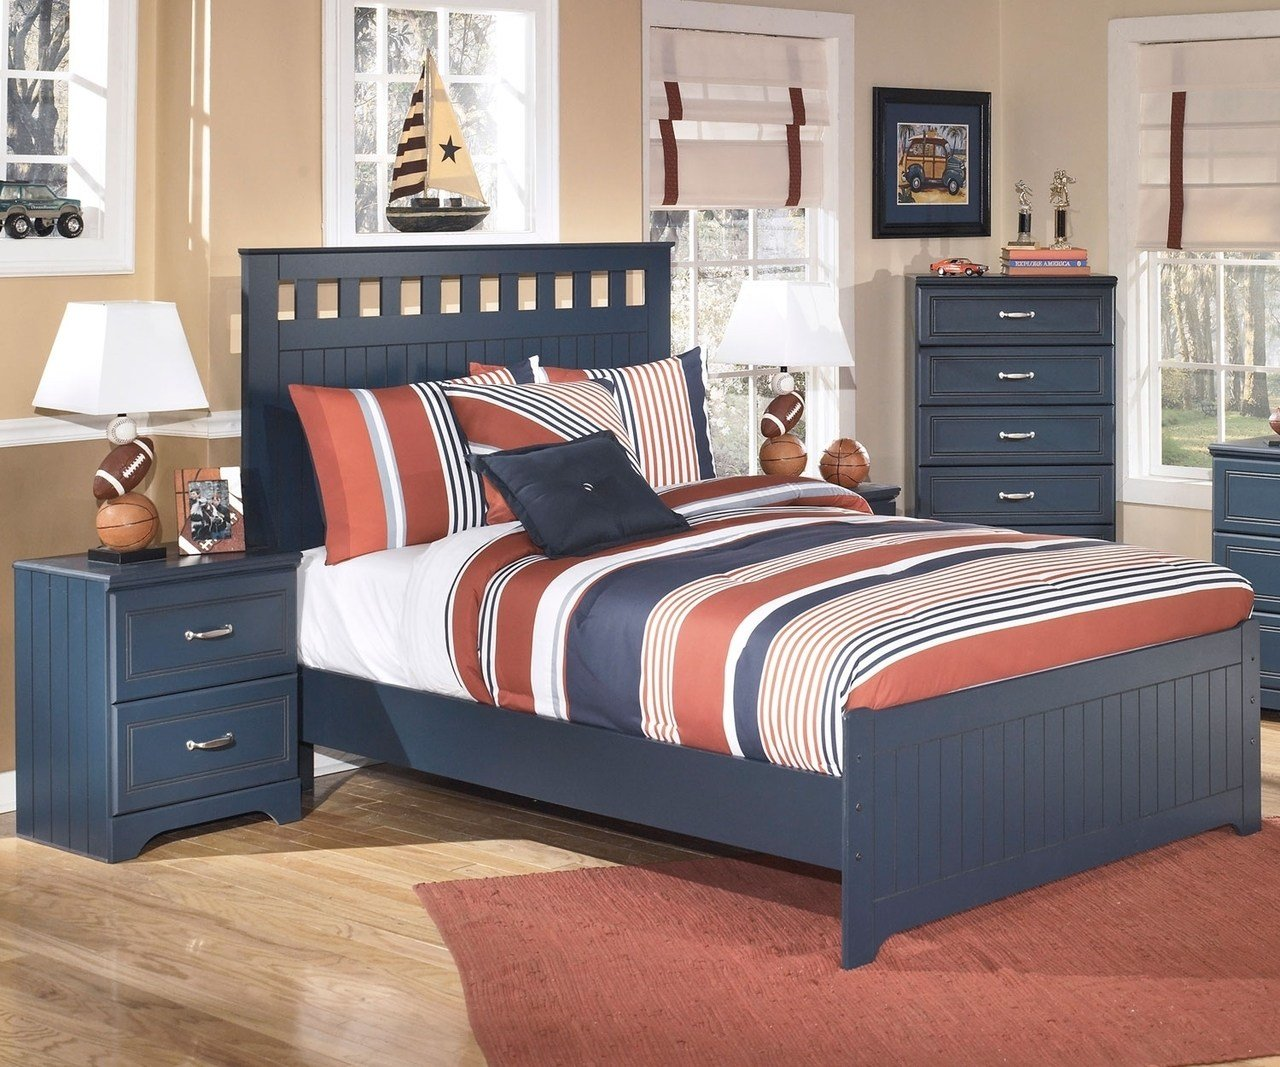 Best Leo B103 Full Size Panel Bed Ashley Kids Furniture With Pictures